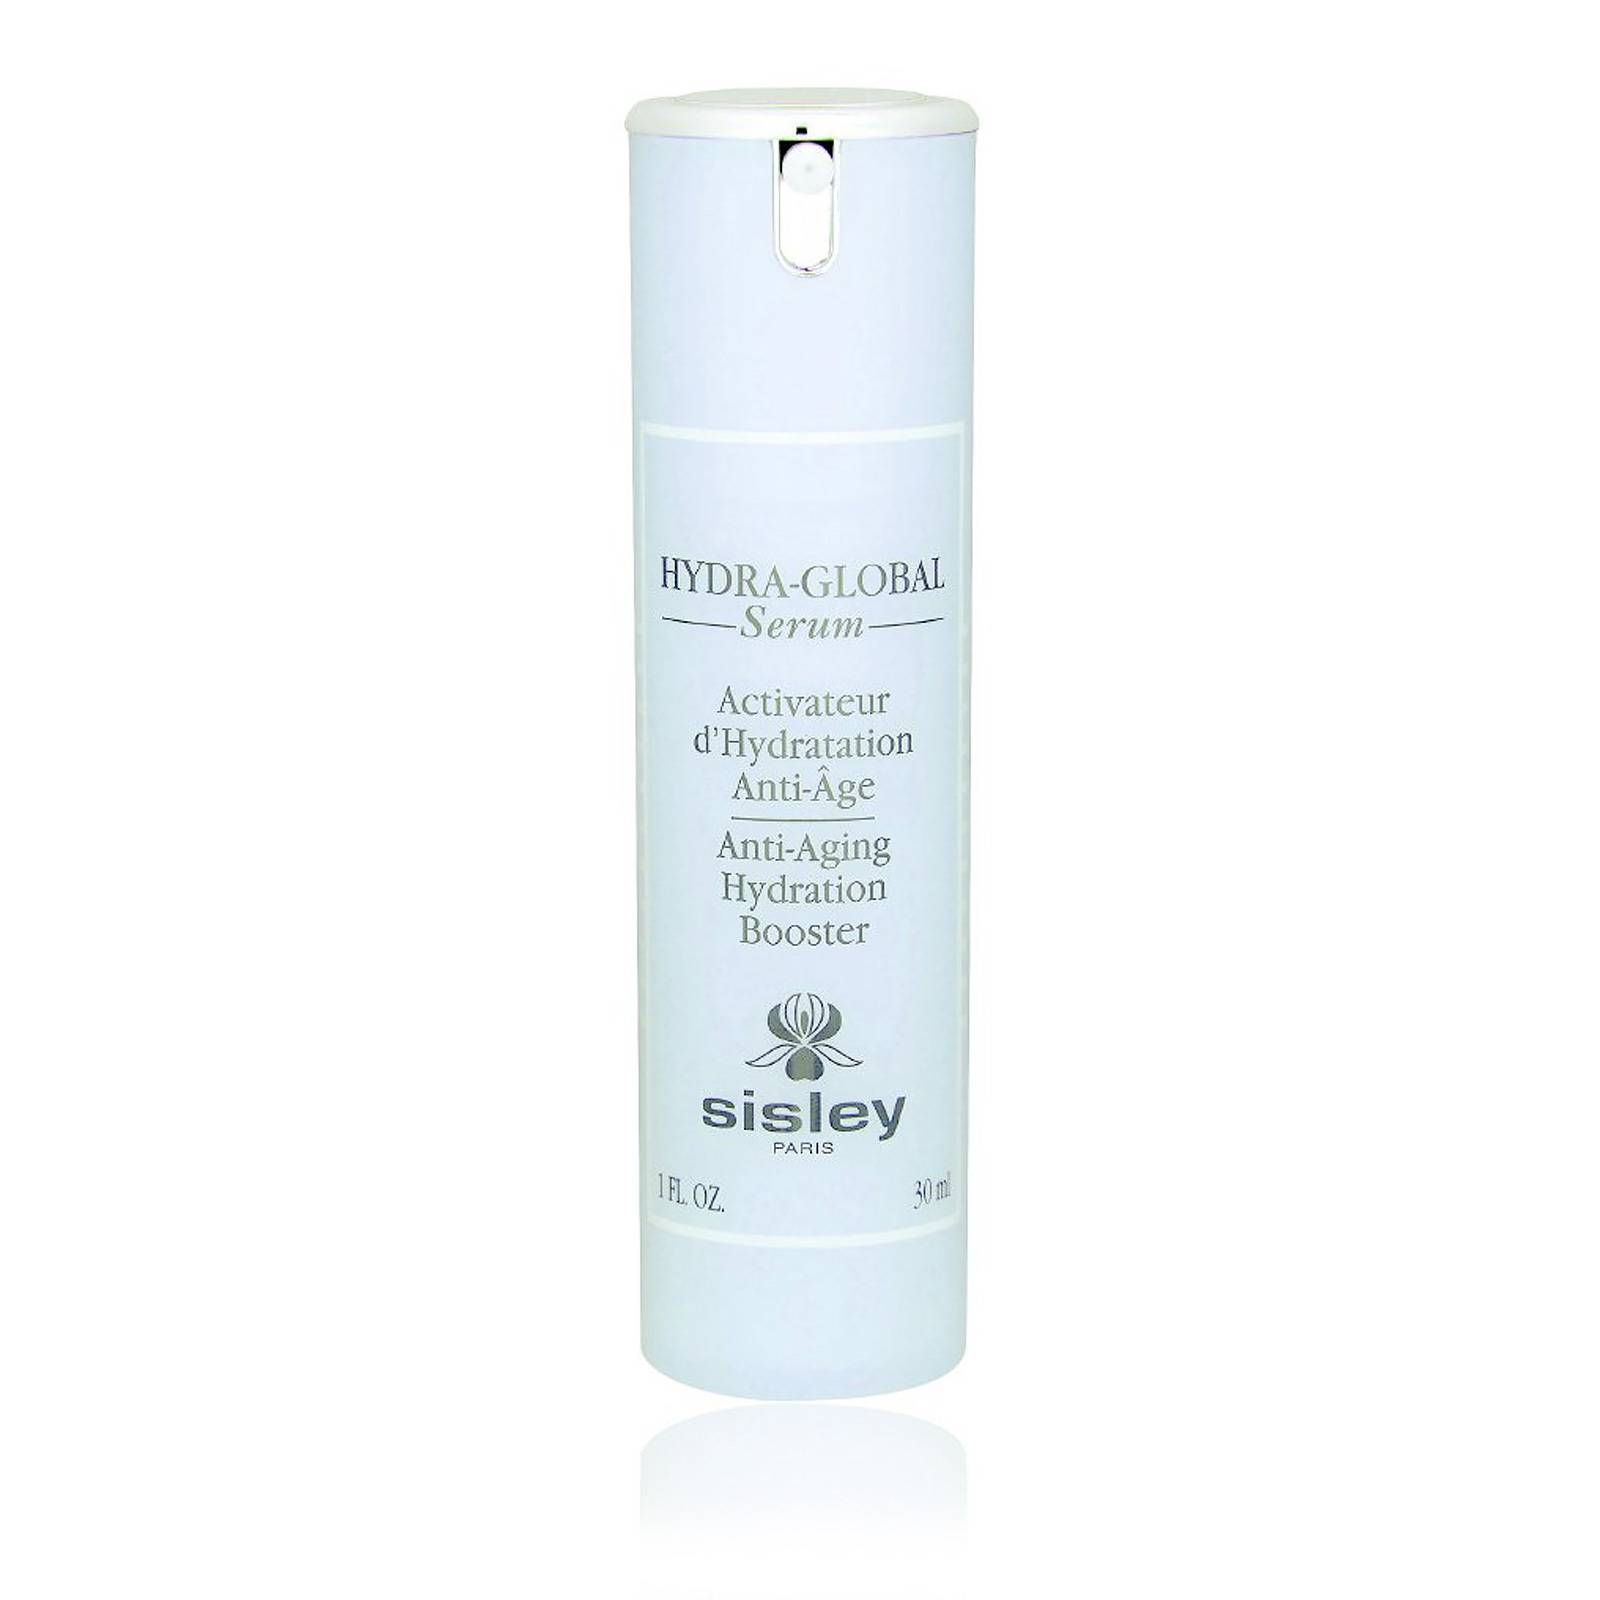 Anti-Aging Hydration Booster